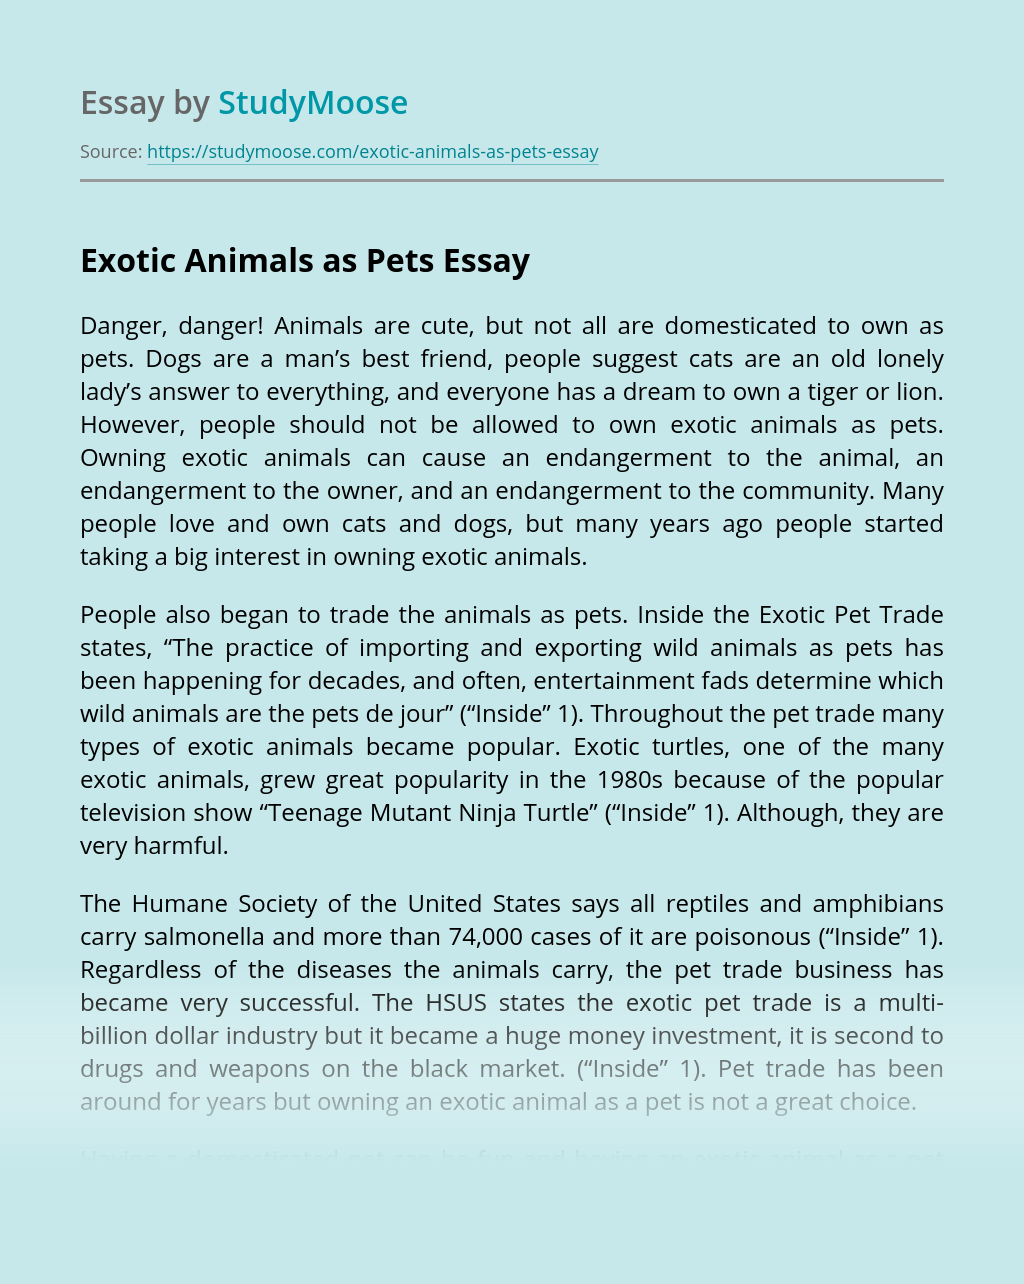 Exotic Animals as Pets